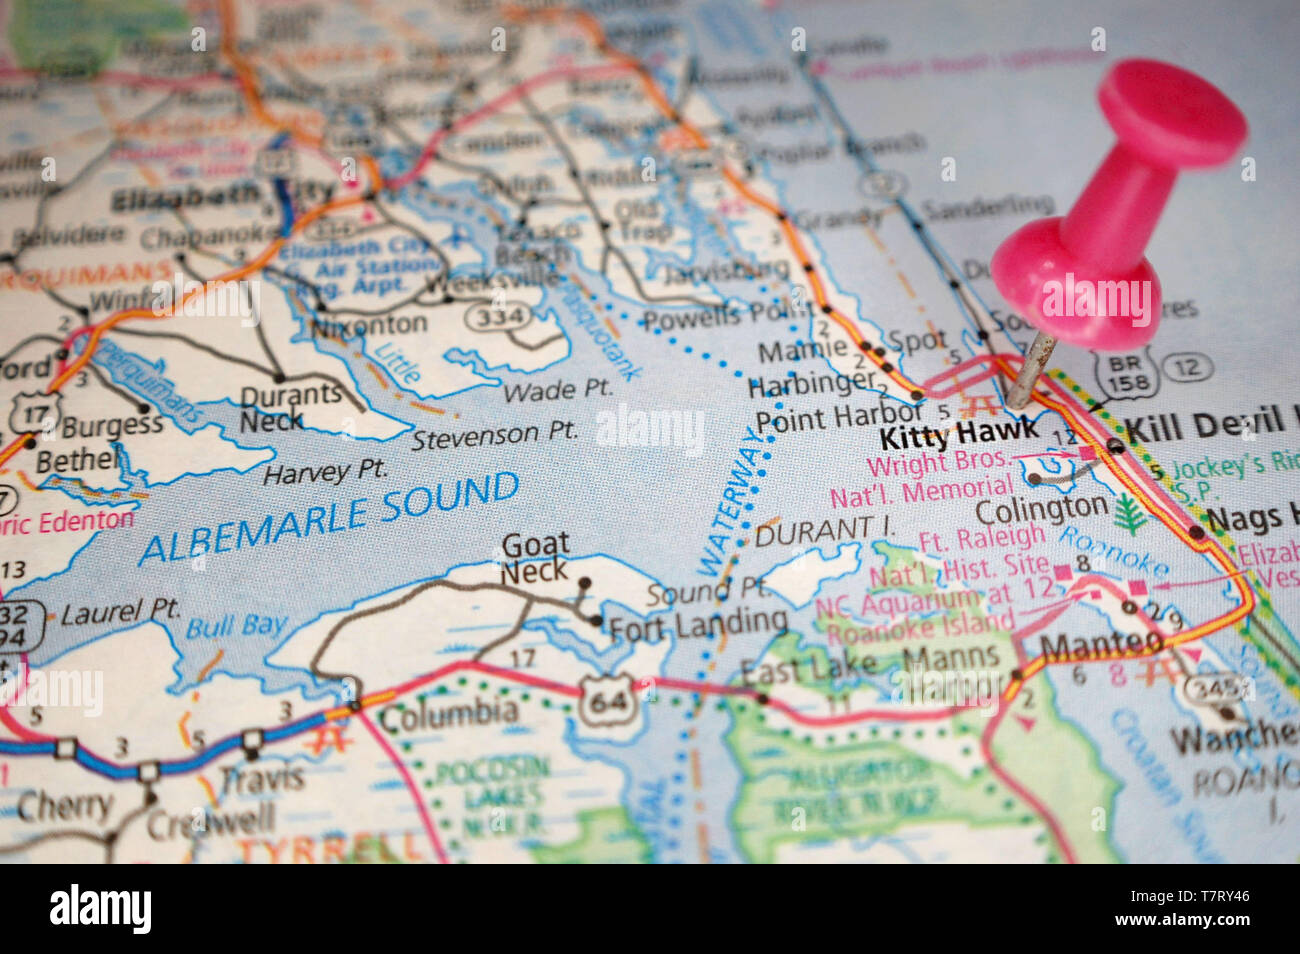 Kitty Hawk Stock Photos & Kitty Hawk Stock Images - Alamy on united states nc map, jennette's pier nc map, outer banks map, colington island nc map, longwood nc map, kill devil nc map, roanoke island nc map, philadelphia nc map, new inlet nc map, panama canal map, grandy nc map, knotts island nc map, north myrtle beach south carolina map, tennessee nc map, bath nc map, corolla nc map, maryland nc map, highway 64 nc map, nags head nc map, baltimore nc map,